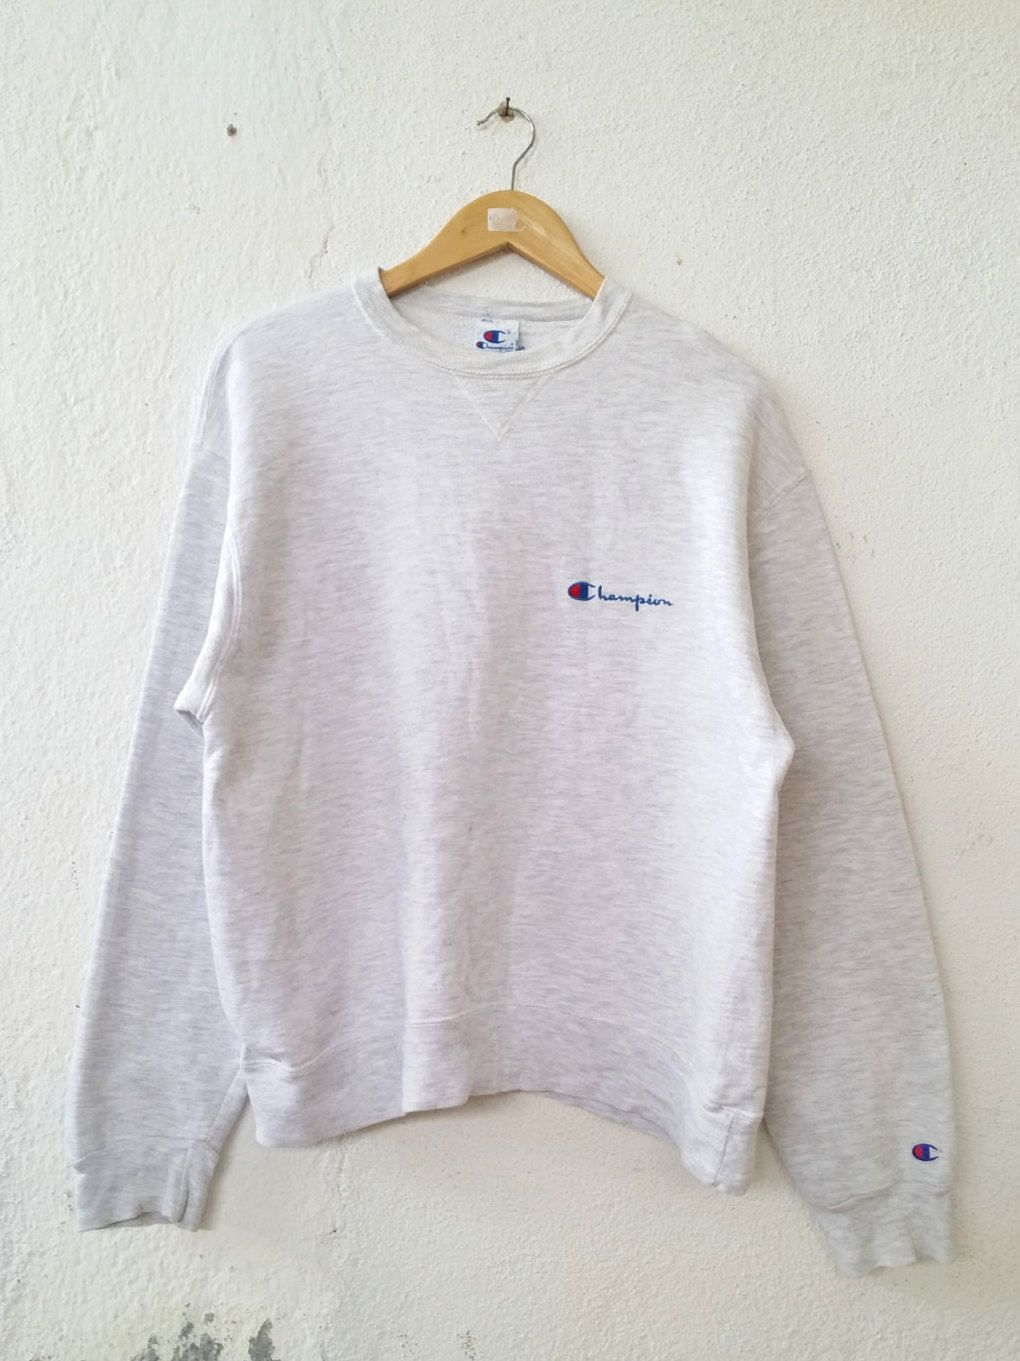 Vintage 90 S Champion Sweatshirt Athlete Apparel Small Spell Out Embroidered Jumper Sweater Pull Over Swag Hip Hop Stre Clothes Champion Sweatshirt Sweatshirts [ 1361 x 1020 Pixel ]